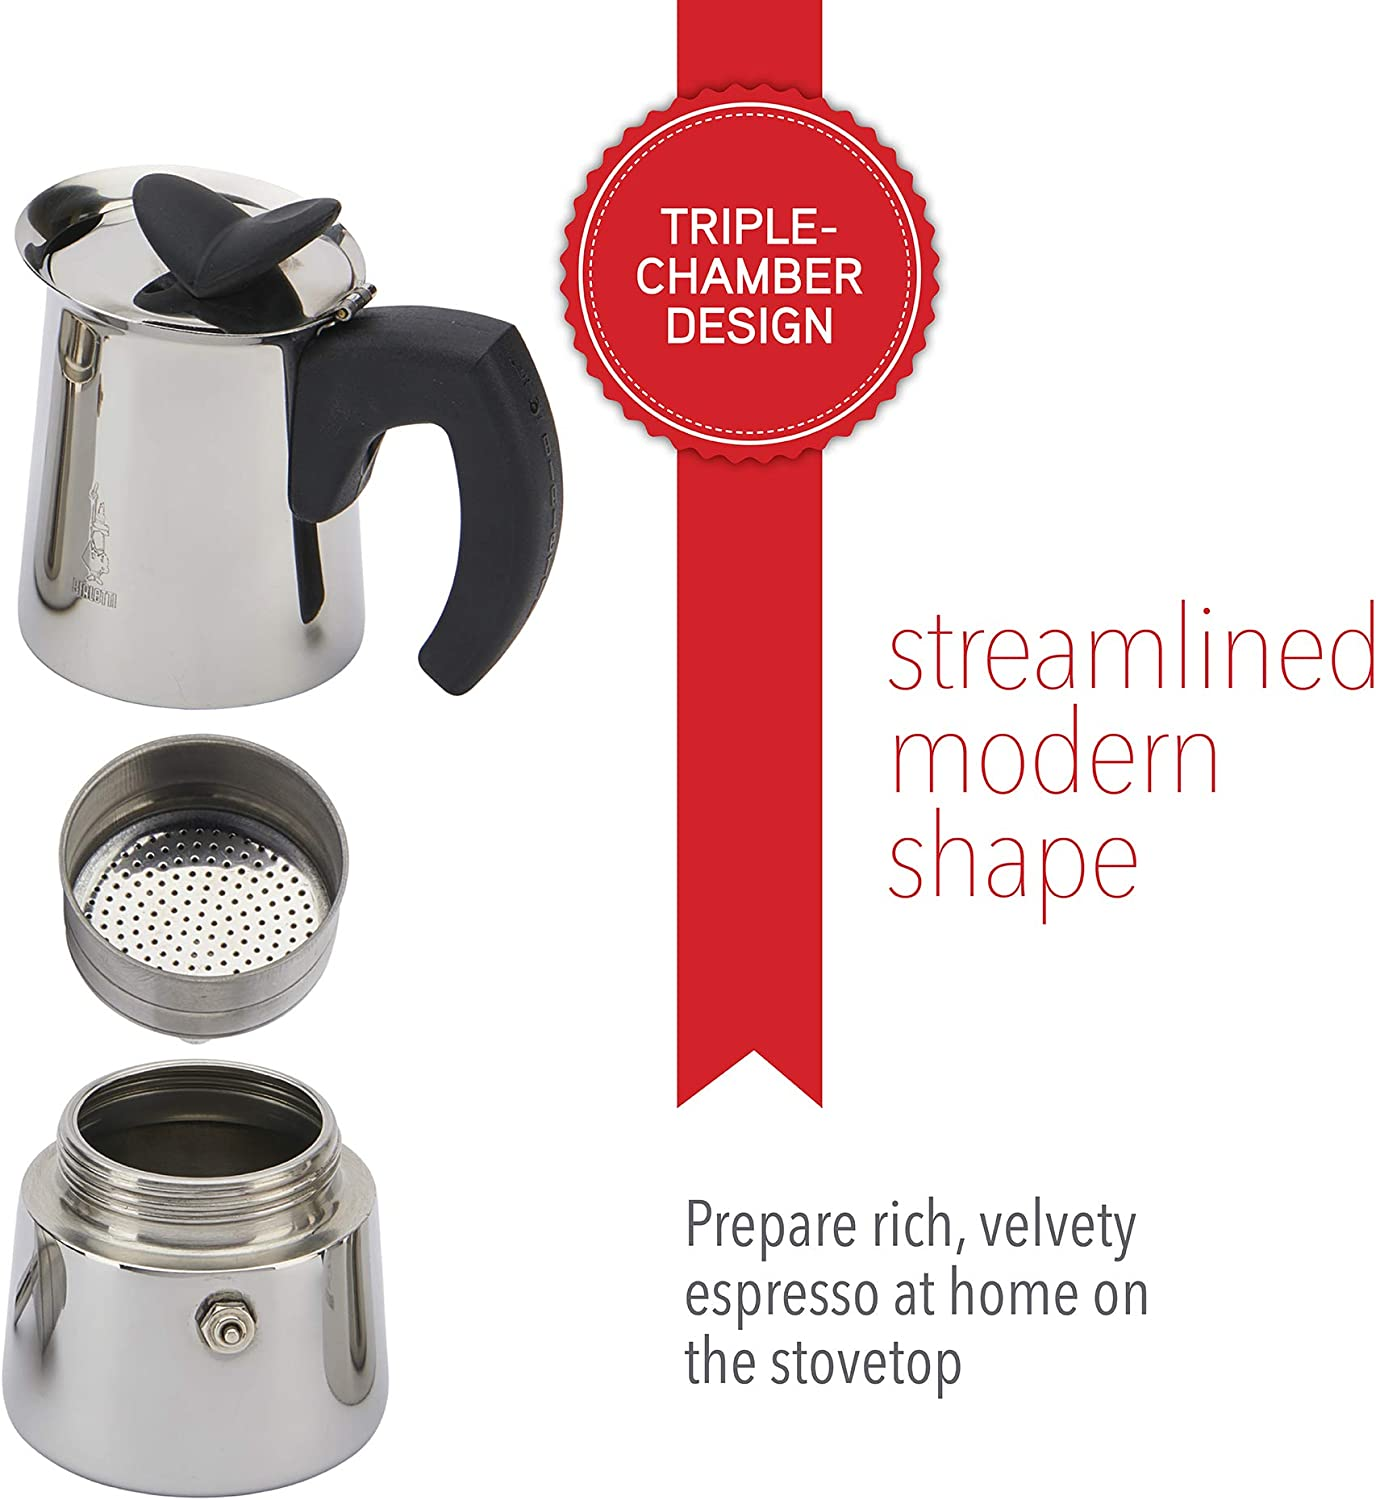 The Sales Partnership Faro Bialetti Complete Kitchen Set with Espresso Coffee Set and Sounds